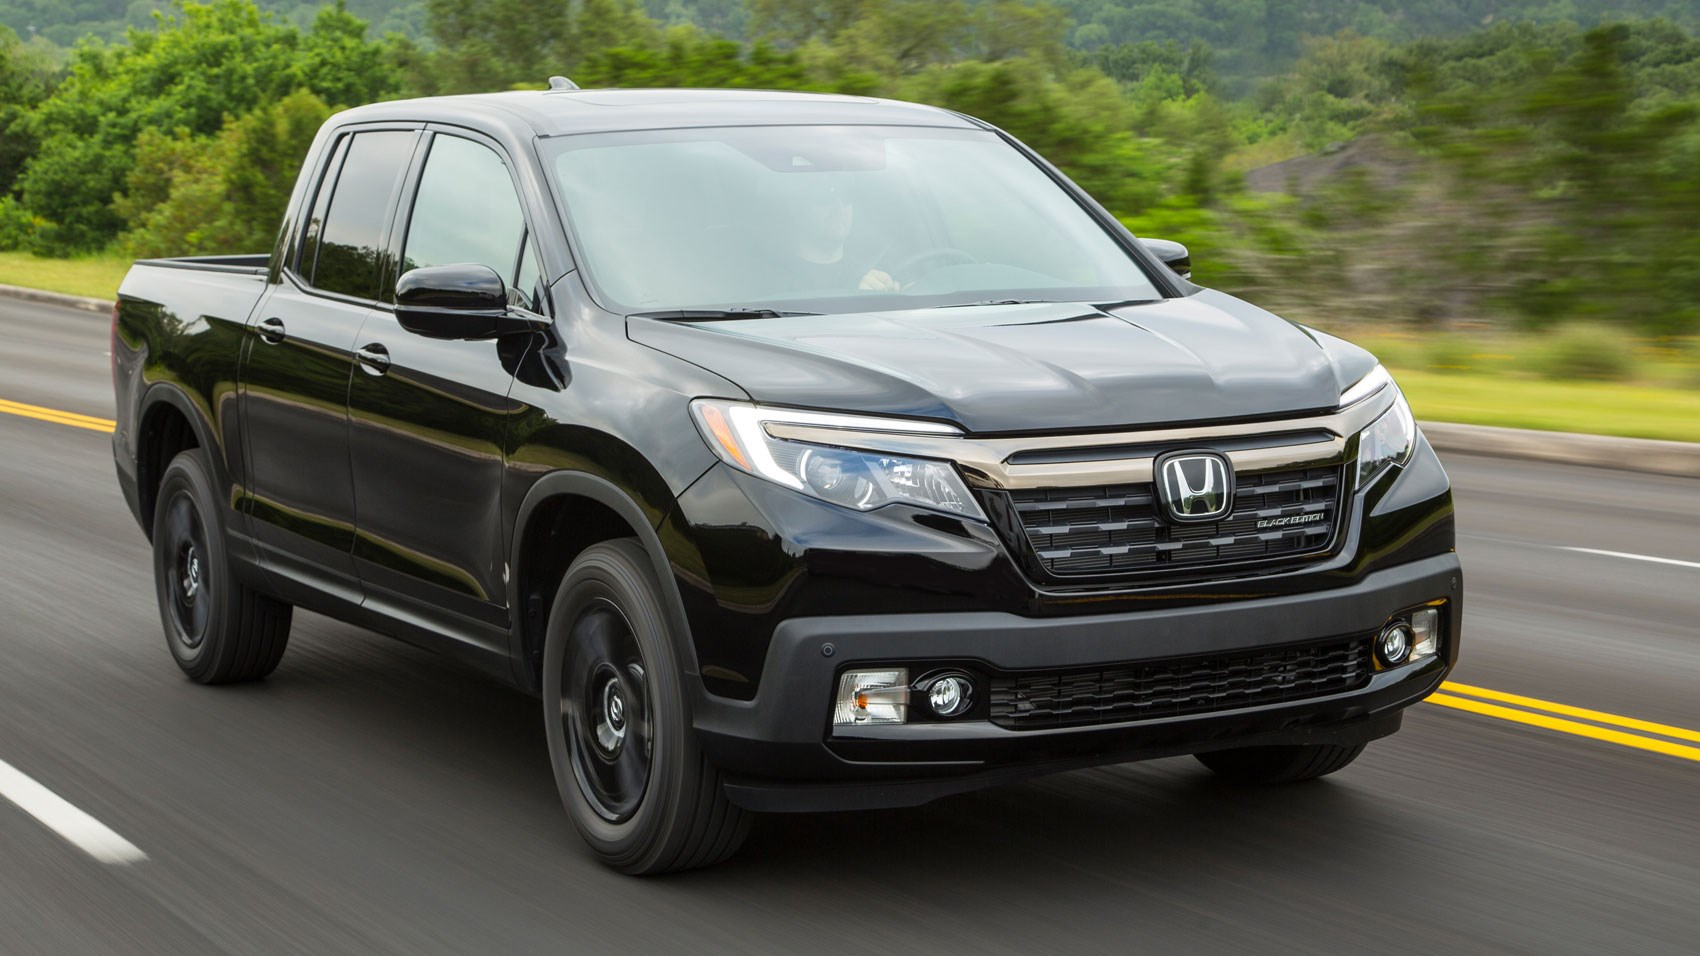 honda ridgeline black edition awd 2017 review by car magazine. Black Bedroom Furniture Sets. Home Design Ideas